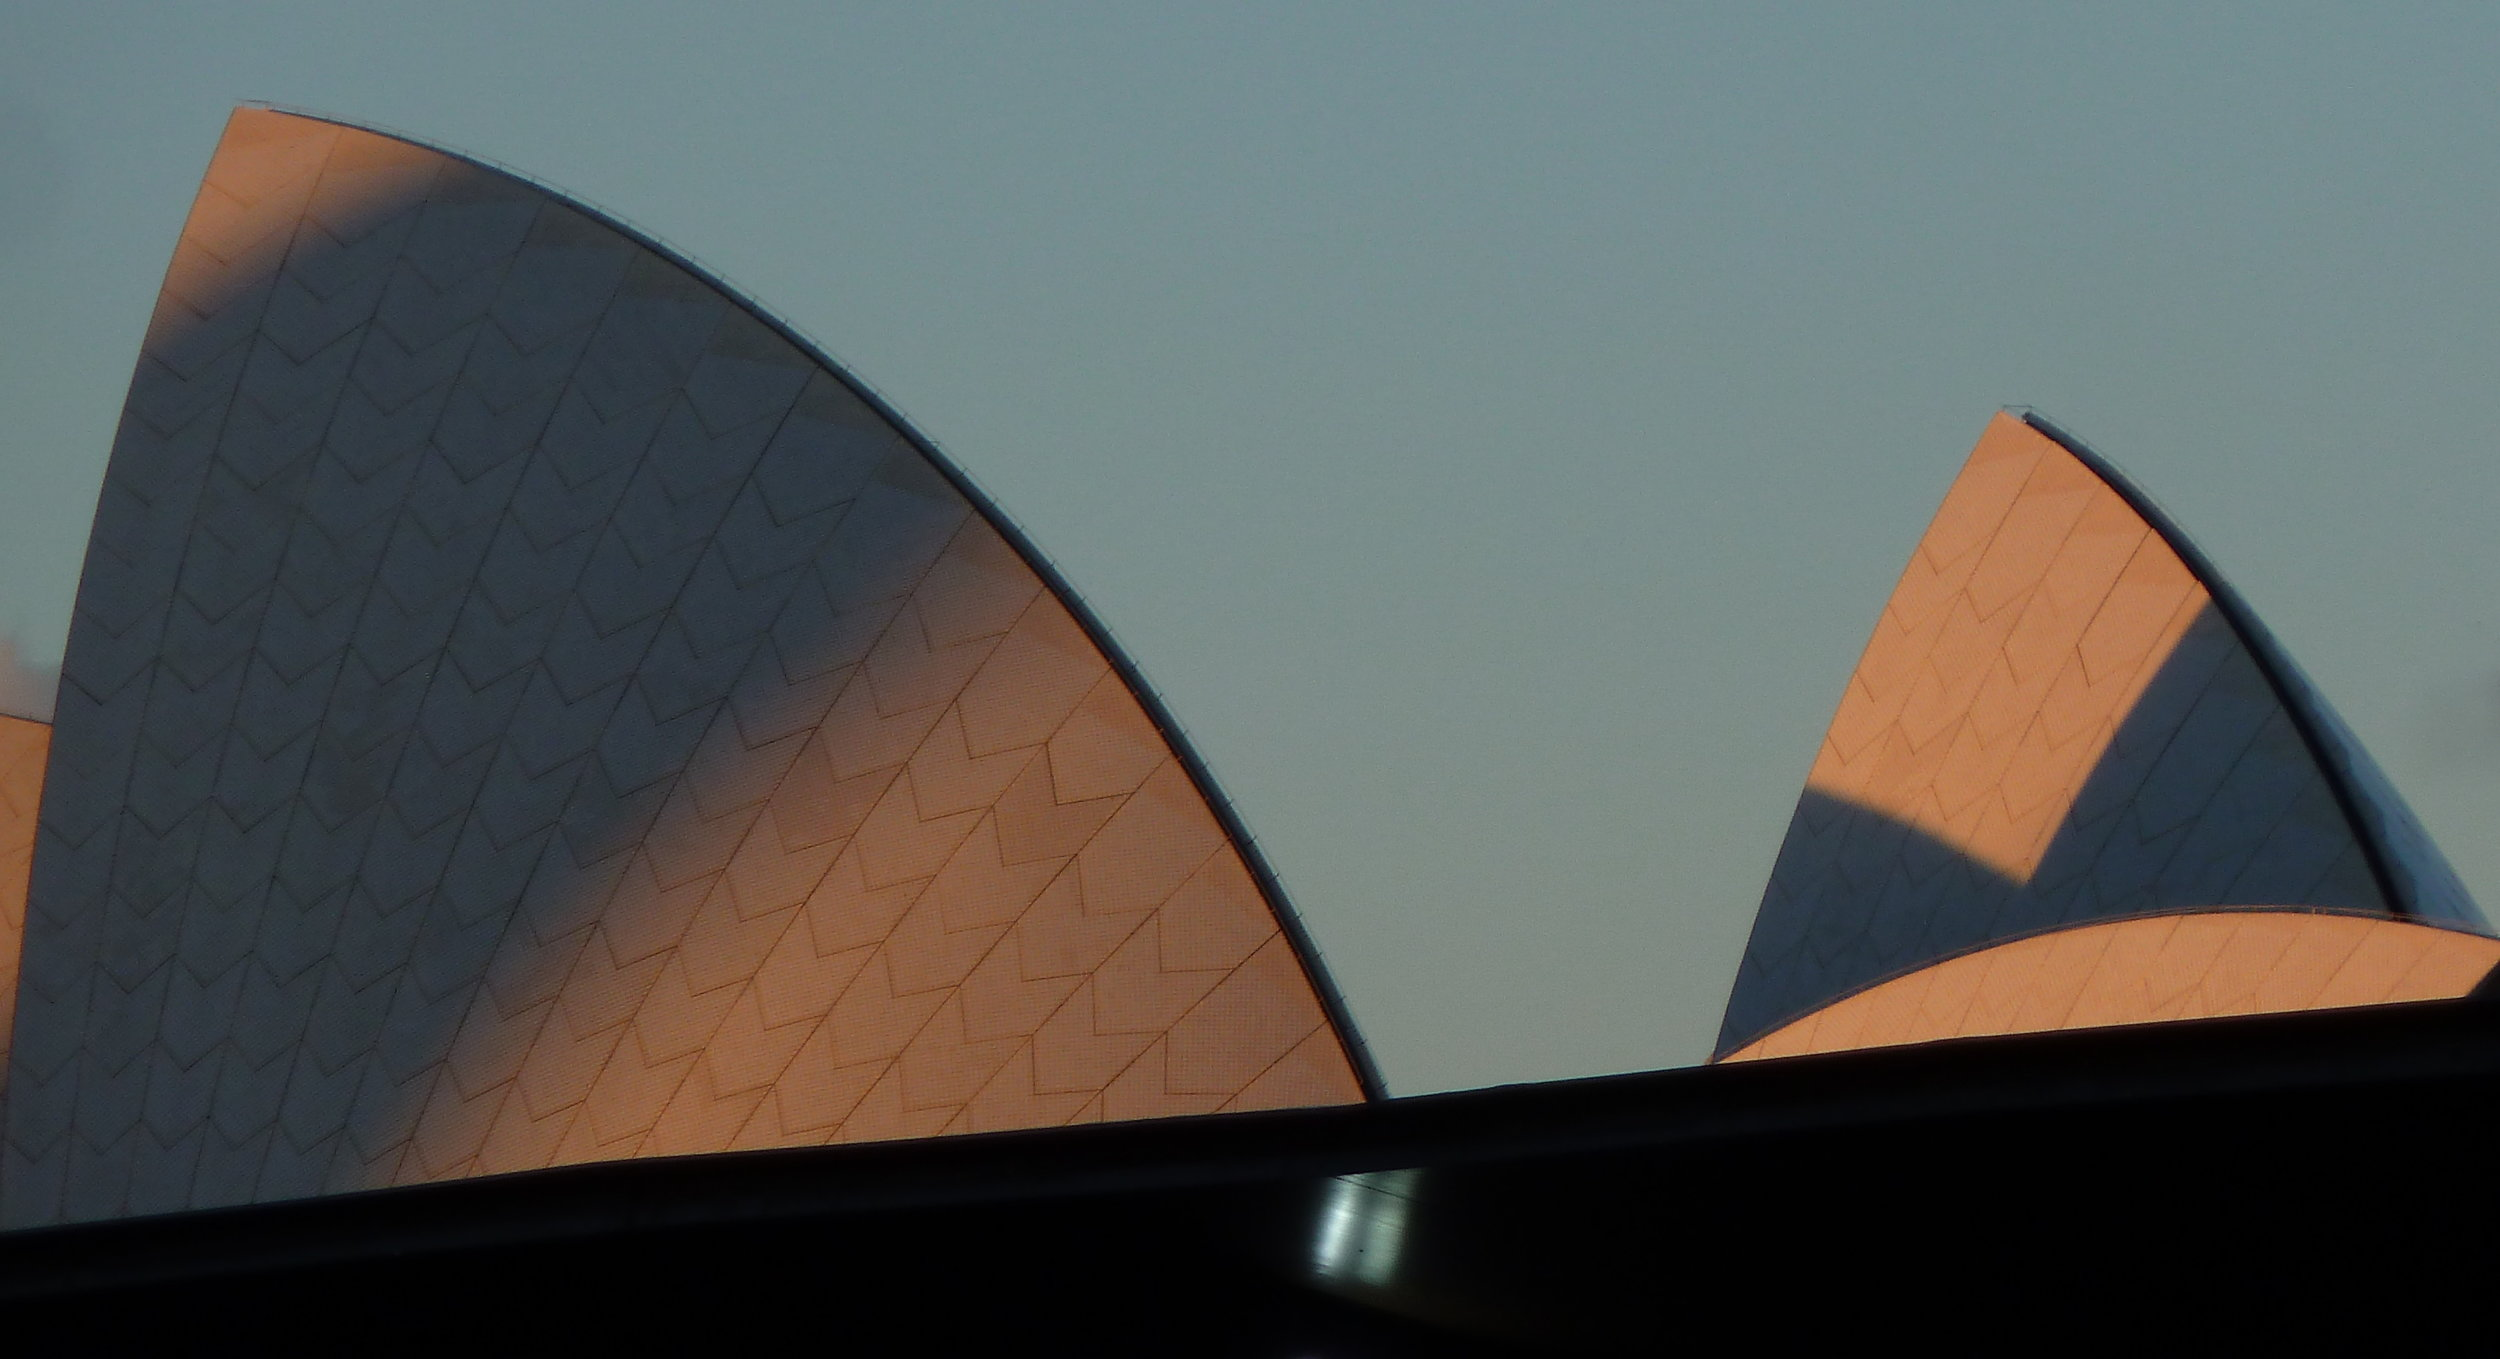 Jul:  The House pops up unexpectedly, Sydney